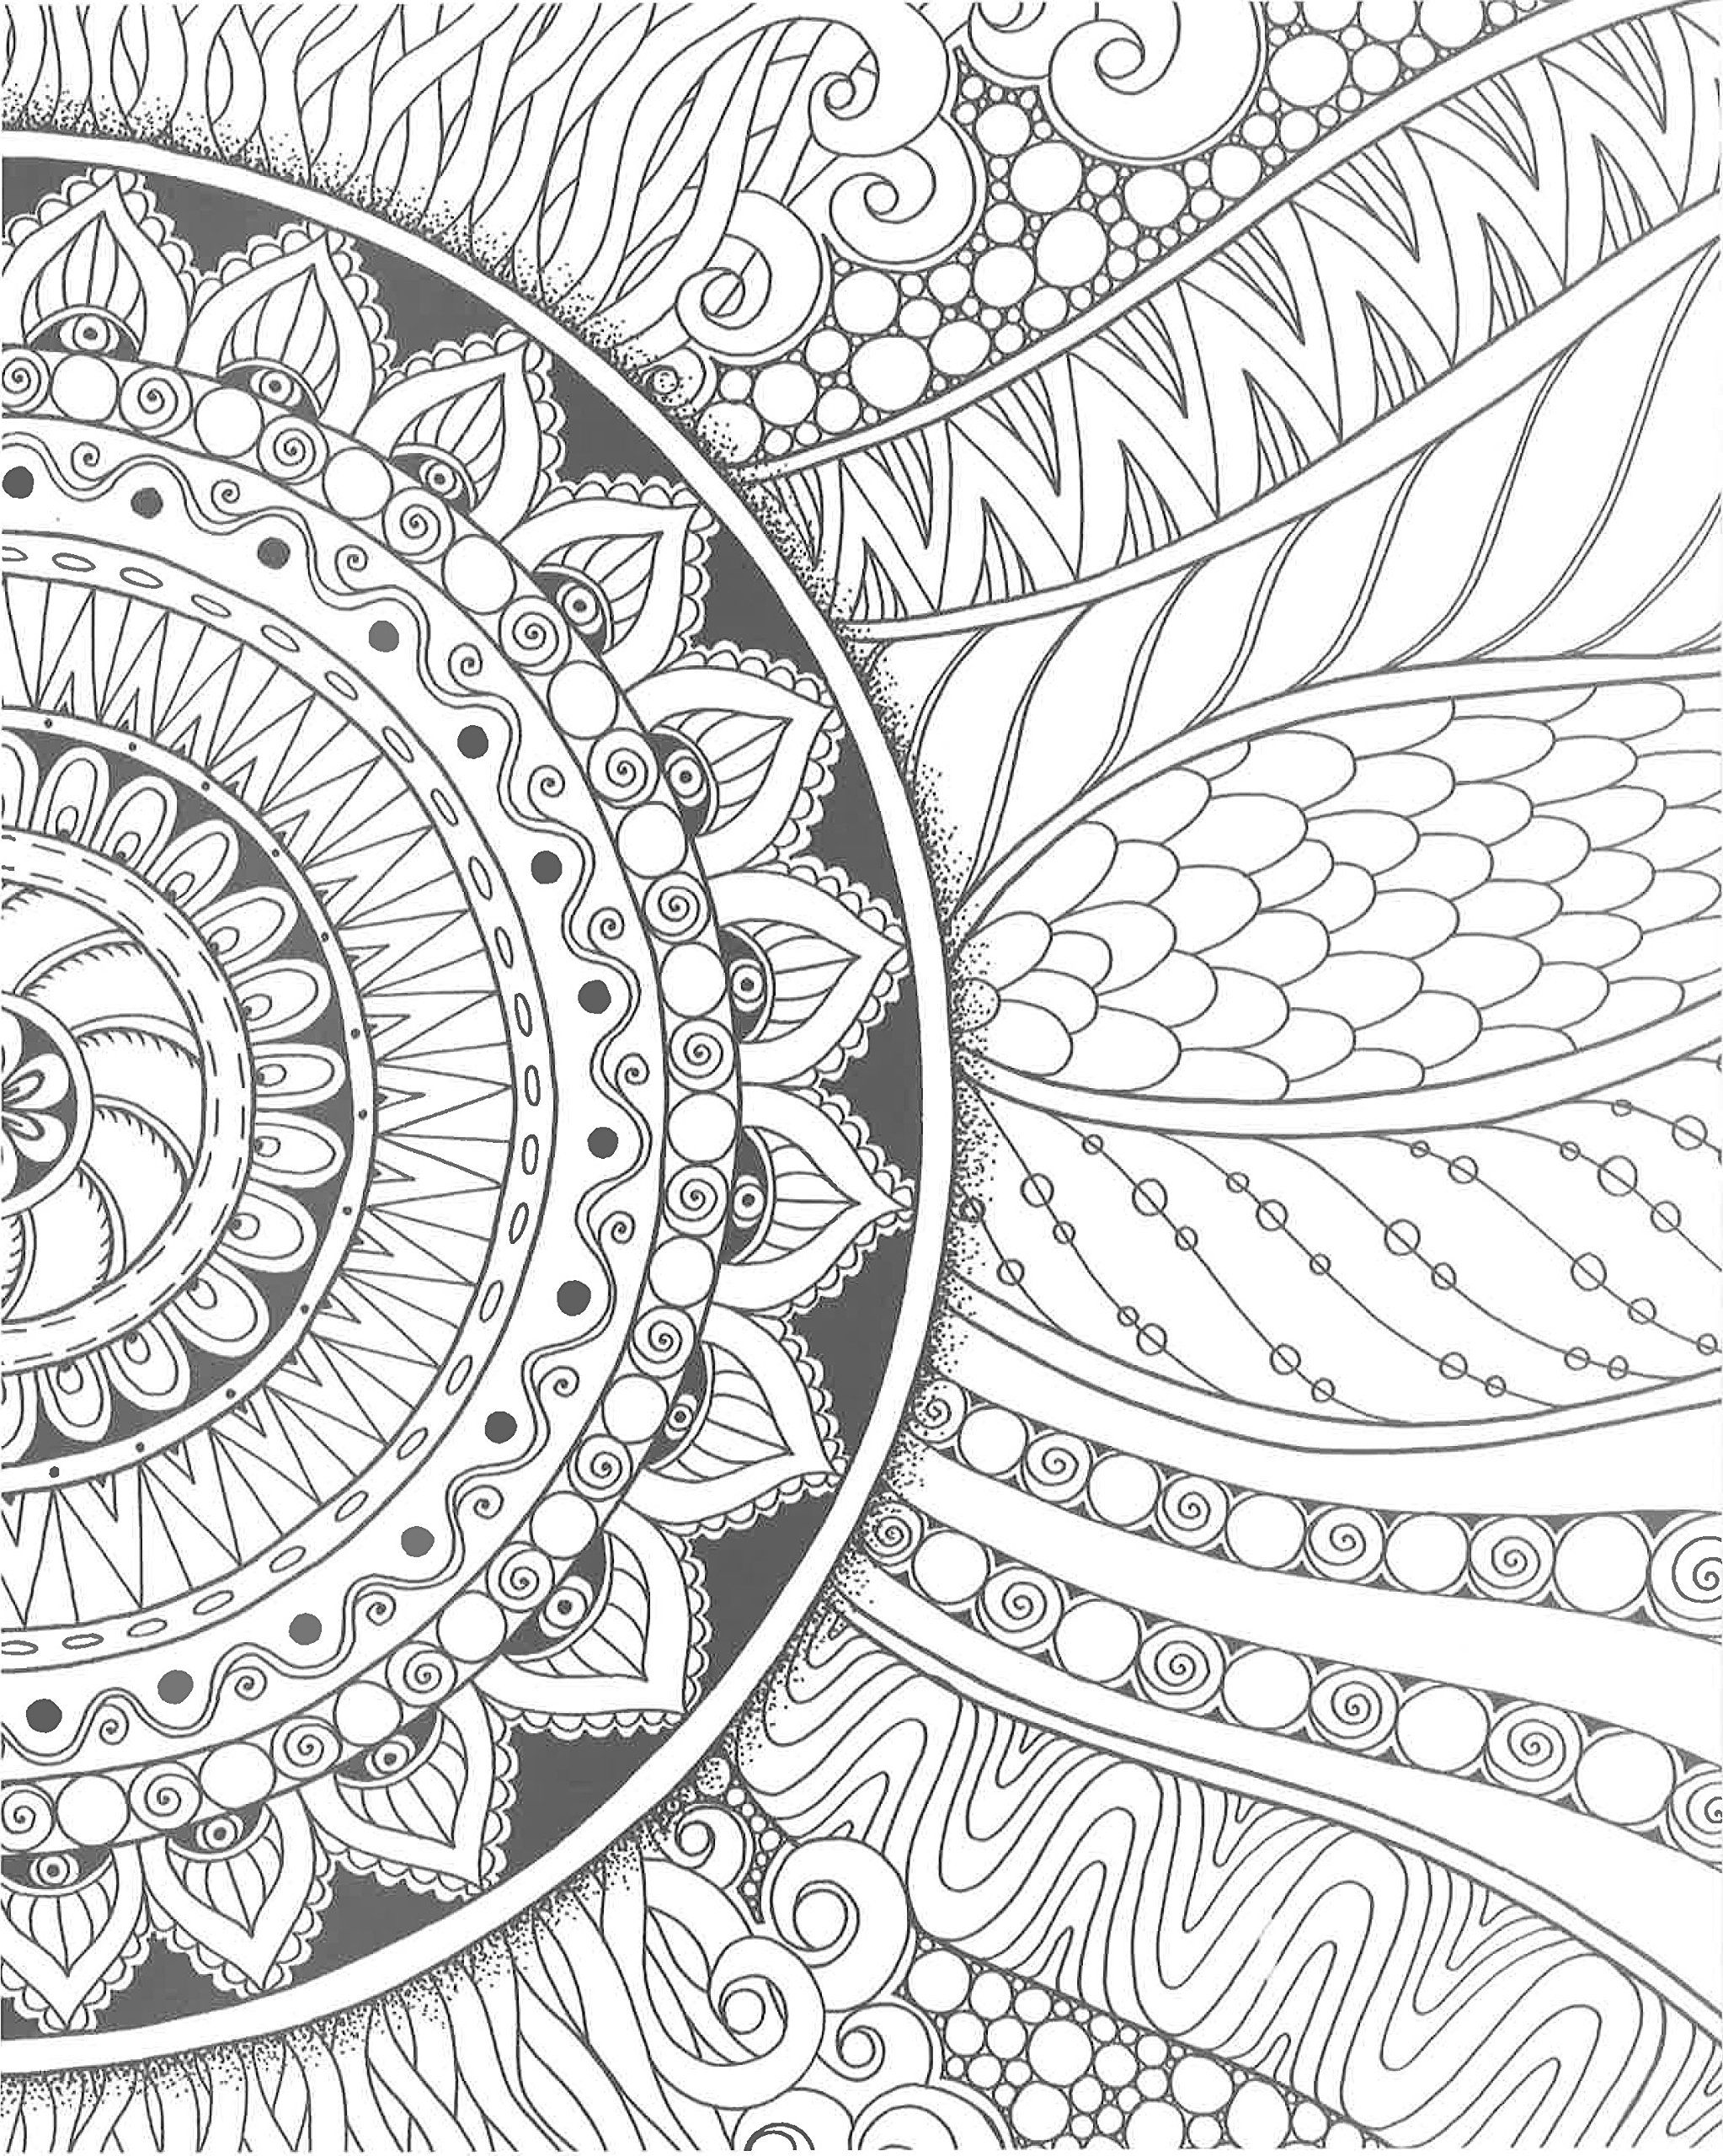 Zendoodle Coloring Creative Sensations Hypnotic Patterns To Color And Display Julia Snegi Drawing Tutorial Easy Mandala Coloring Pages Easy Patterns To Draw